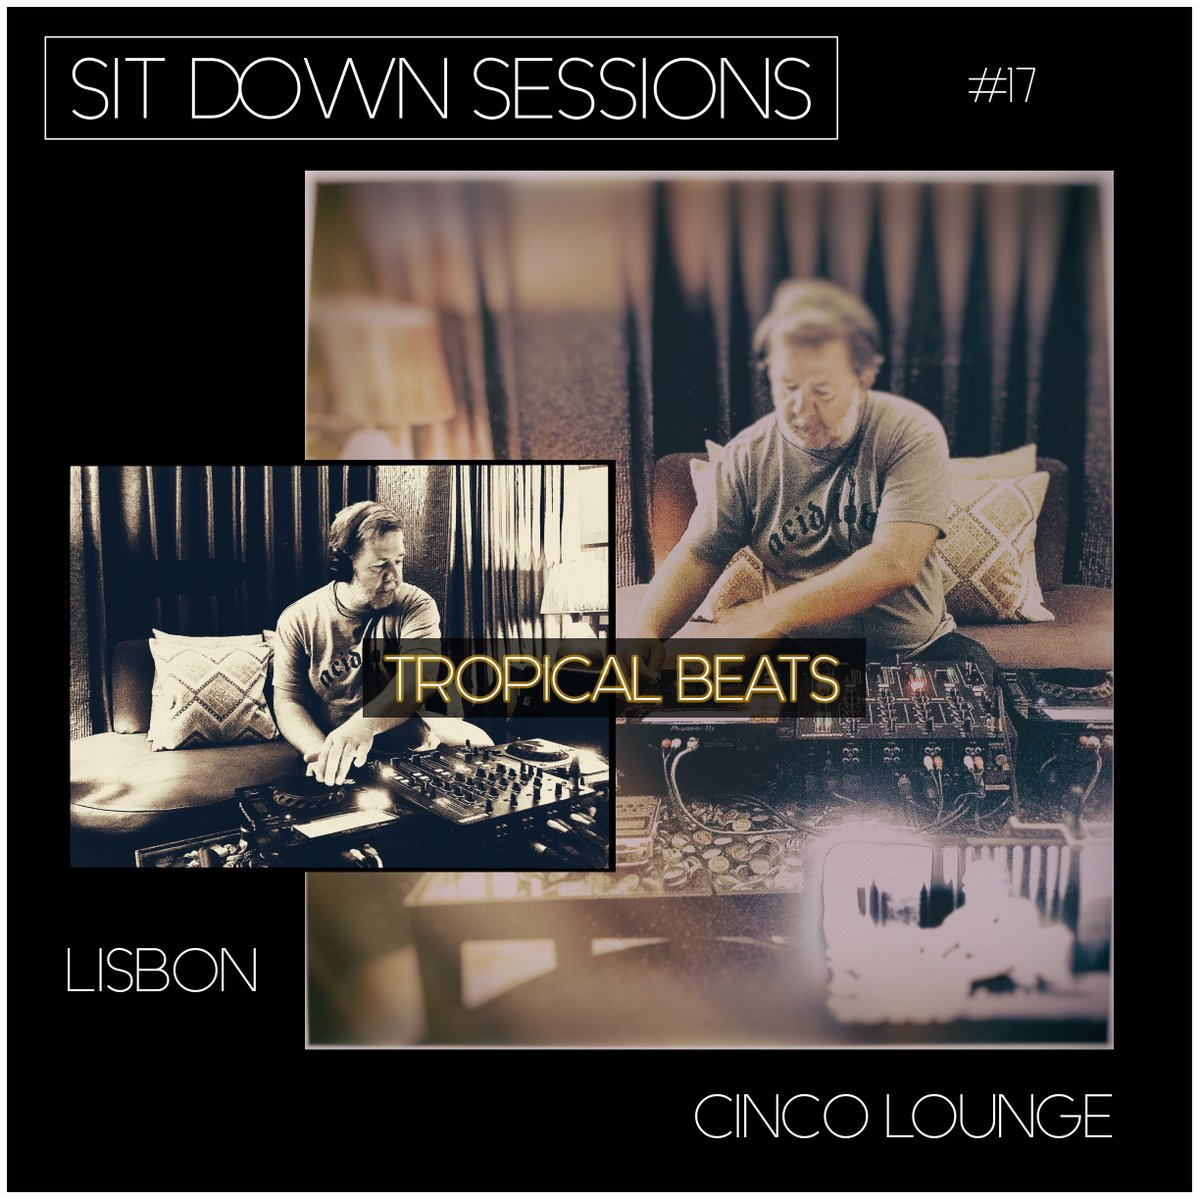 SIT DOWN SESSIONS #17 w/ Tropical Beats at @CINCOlounge (Lisbon) Saturday, October 3, 2020  #sitdownsessions #modmotif #spiritswithagroove #cincolounge #tropicalbeats #funk #raregroove #downtempo #worldmusic #electronicmusic #dj #livestream #principereal #lisboa #lisbon #portugal https://t.co/gQ5kYVMhVm